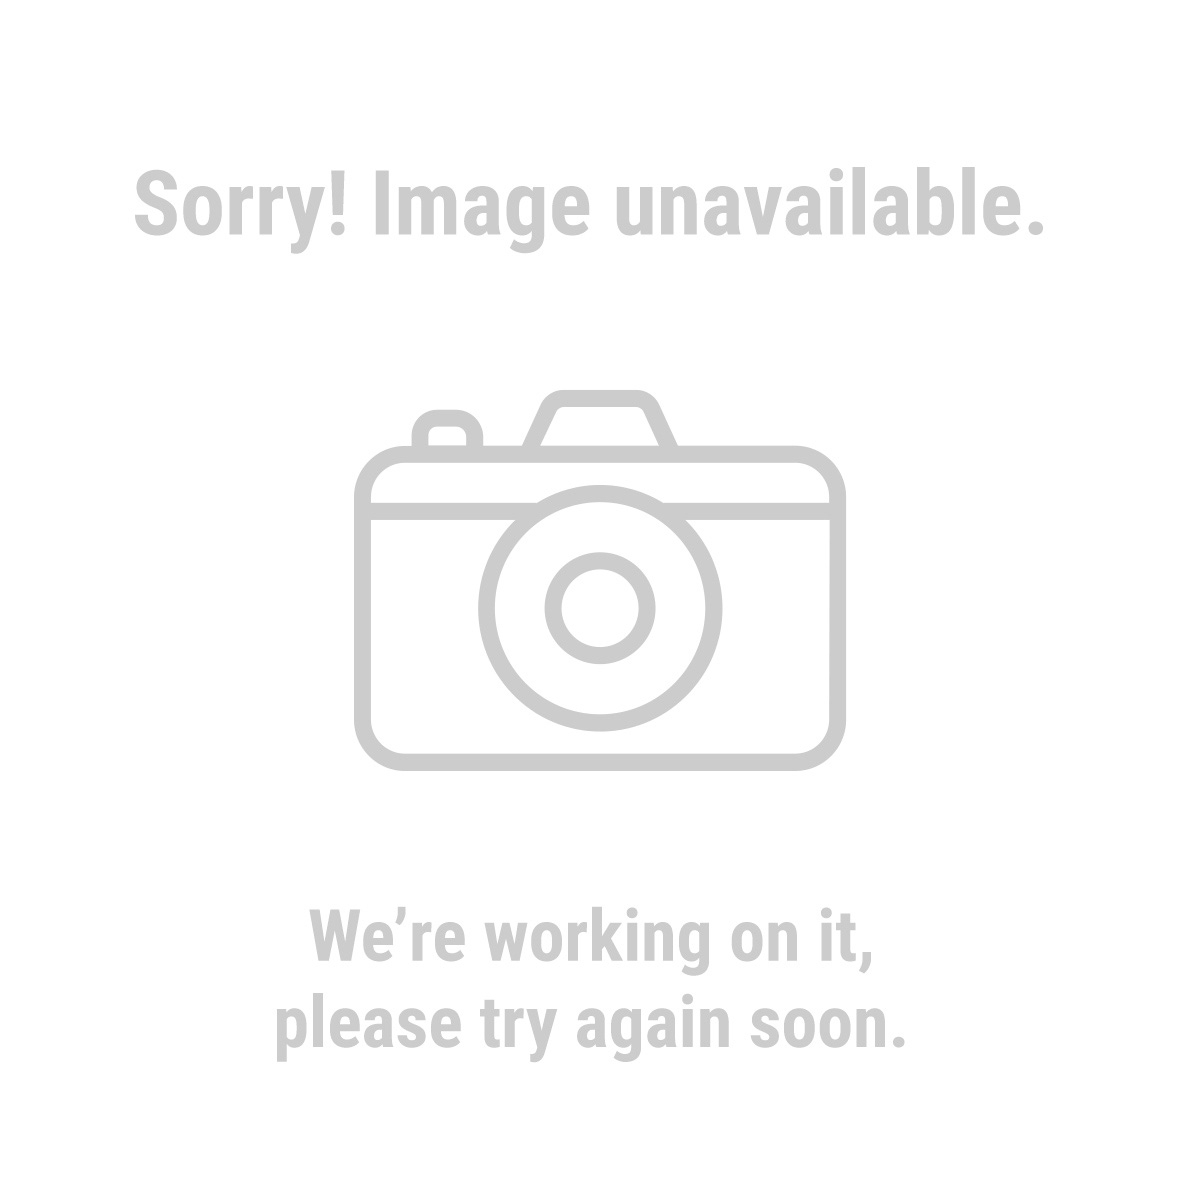 HARDY 68491 Pack of 100 White Nitrile Gloves, Size Large